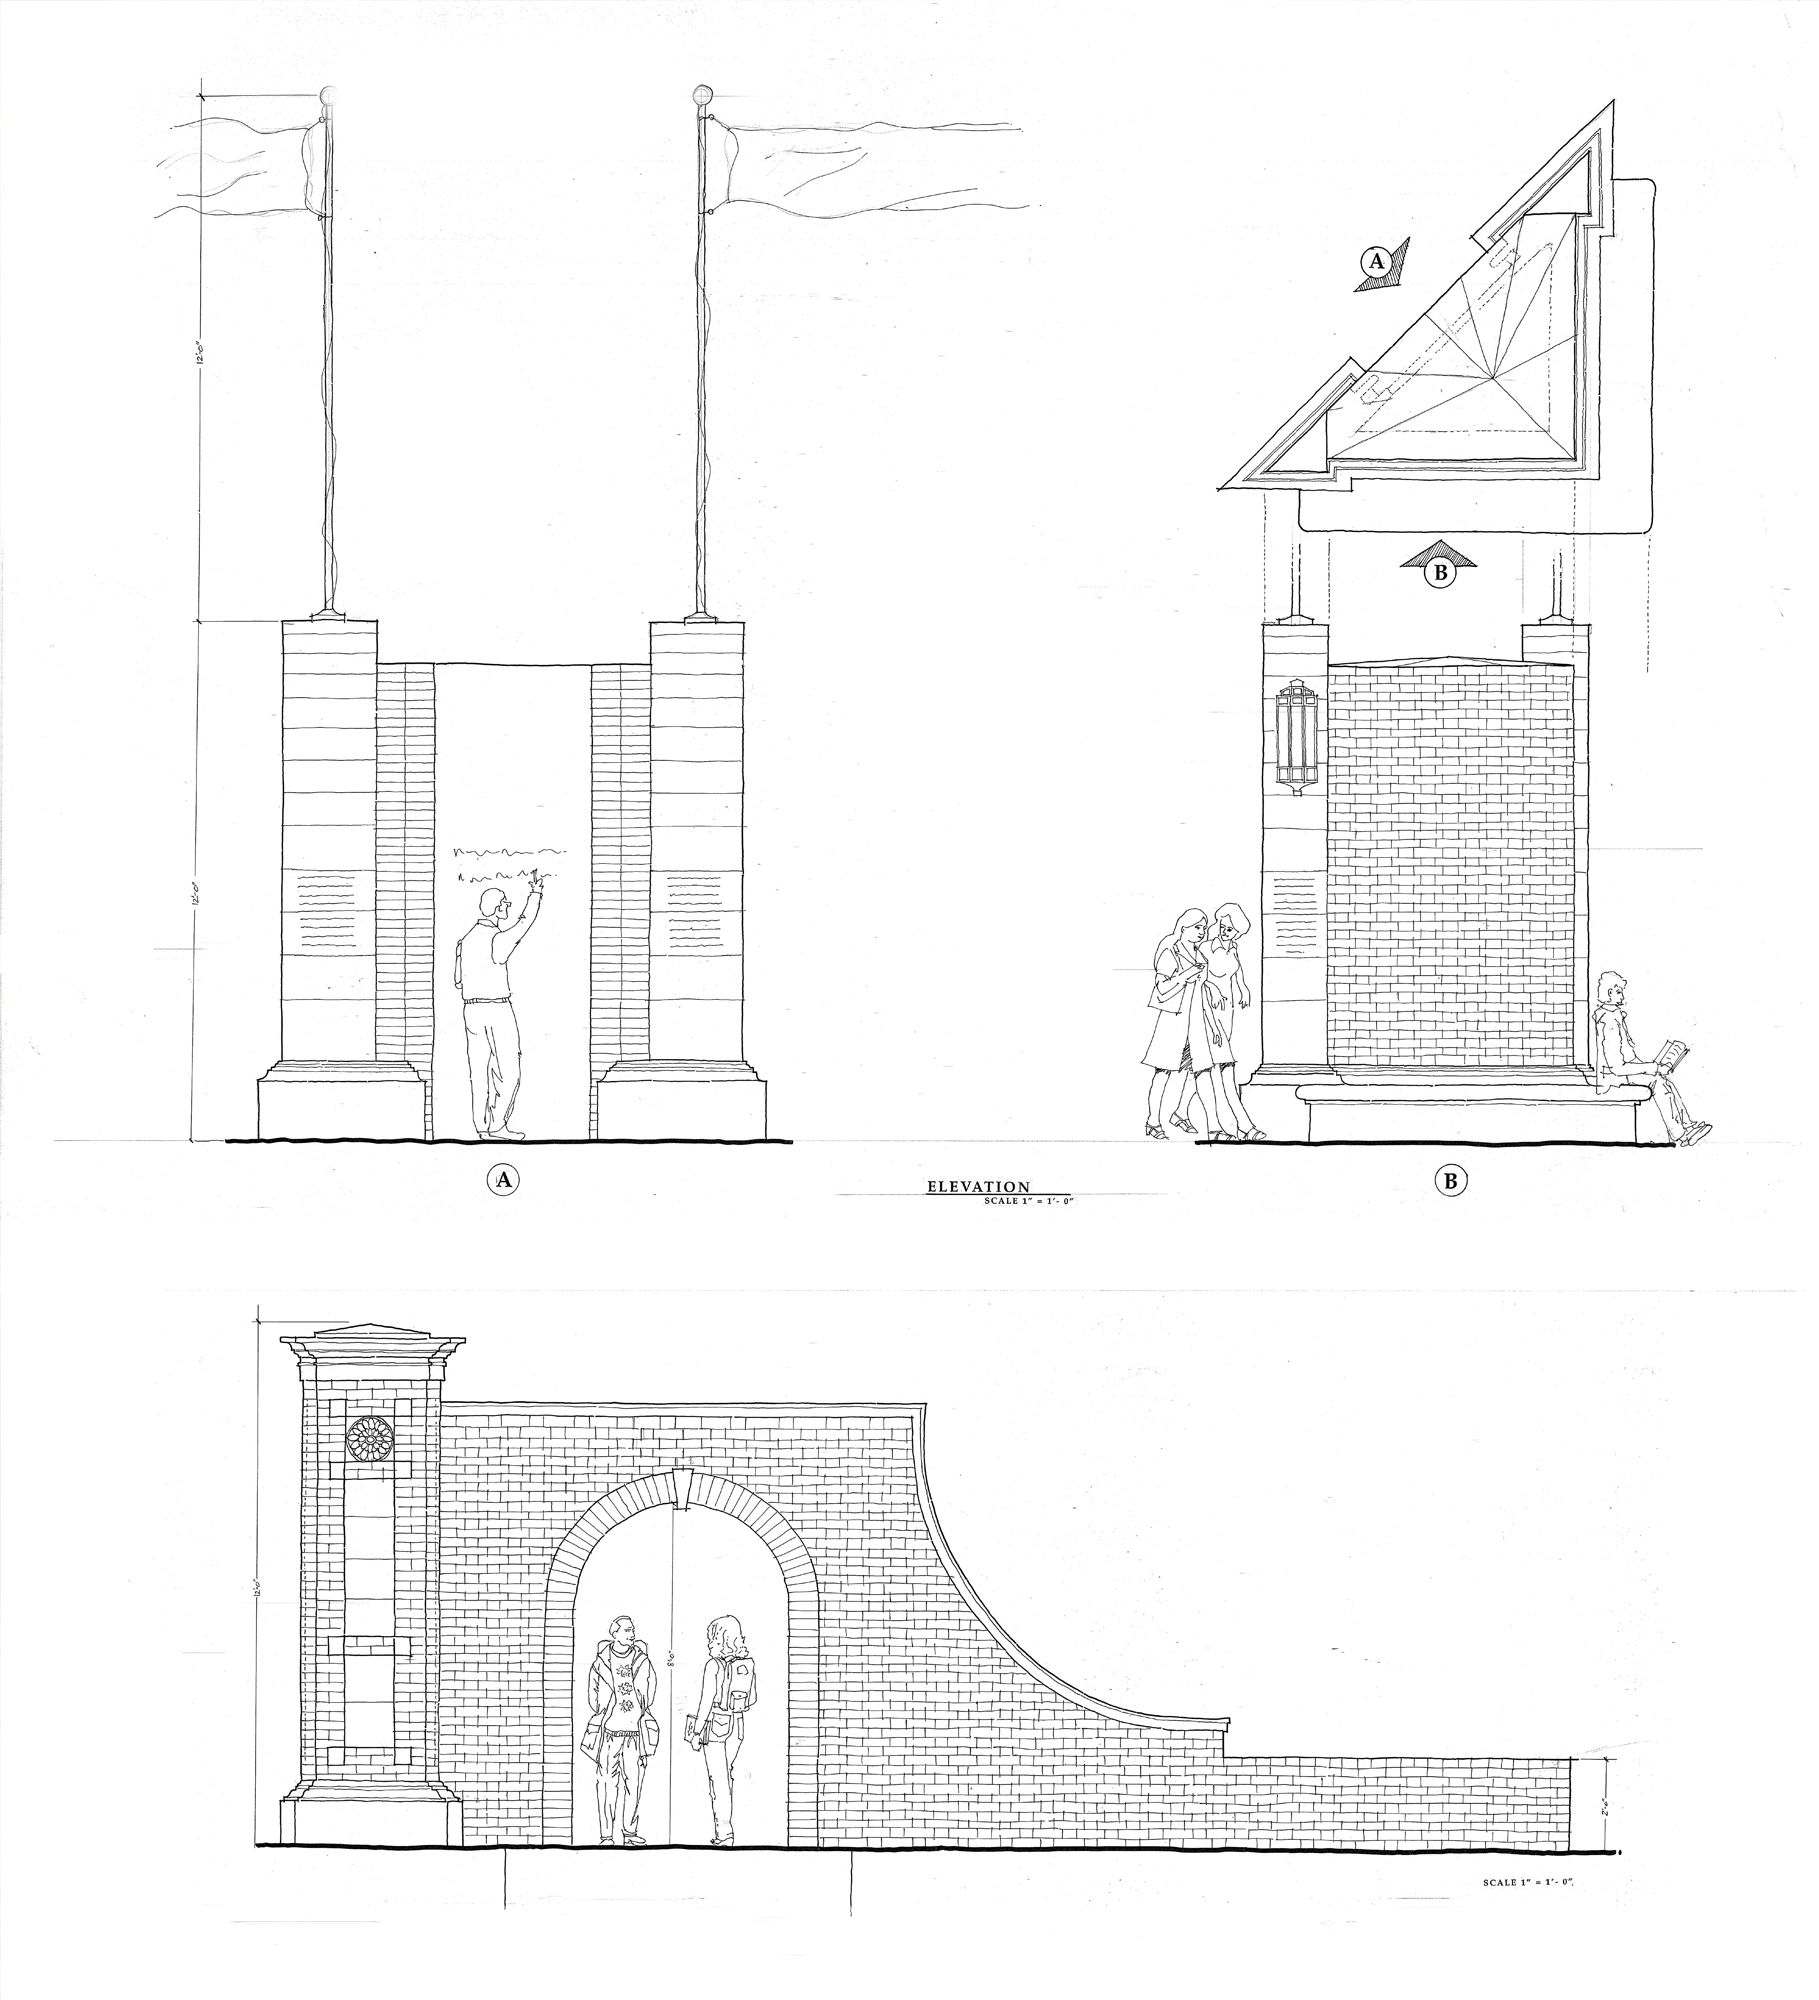 University of Rochester_Elevation_compressed